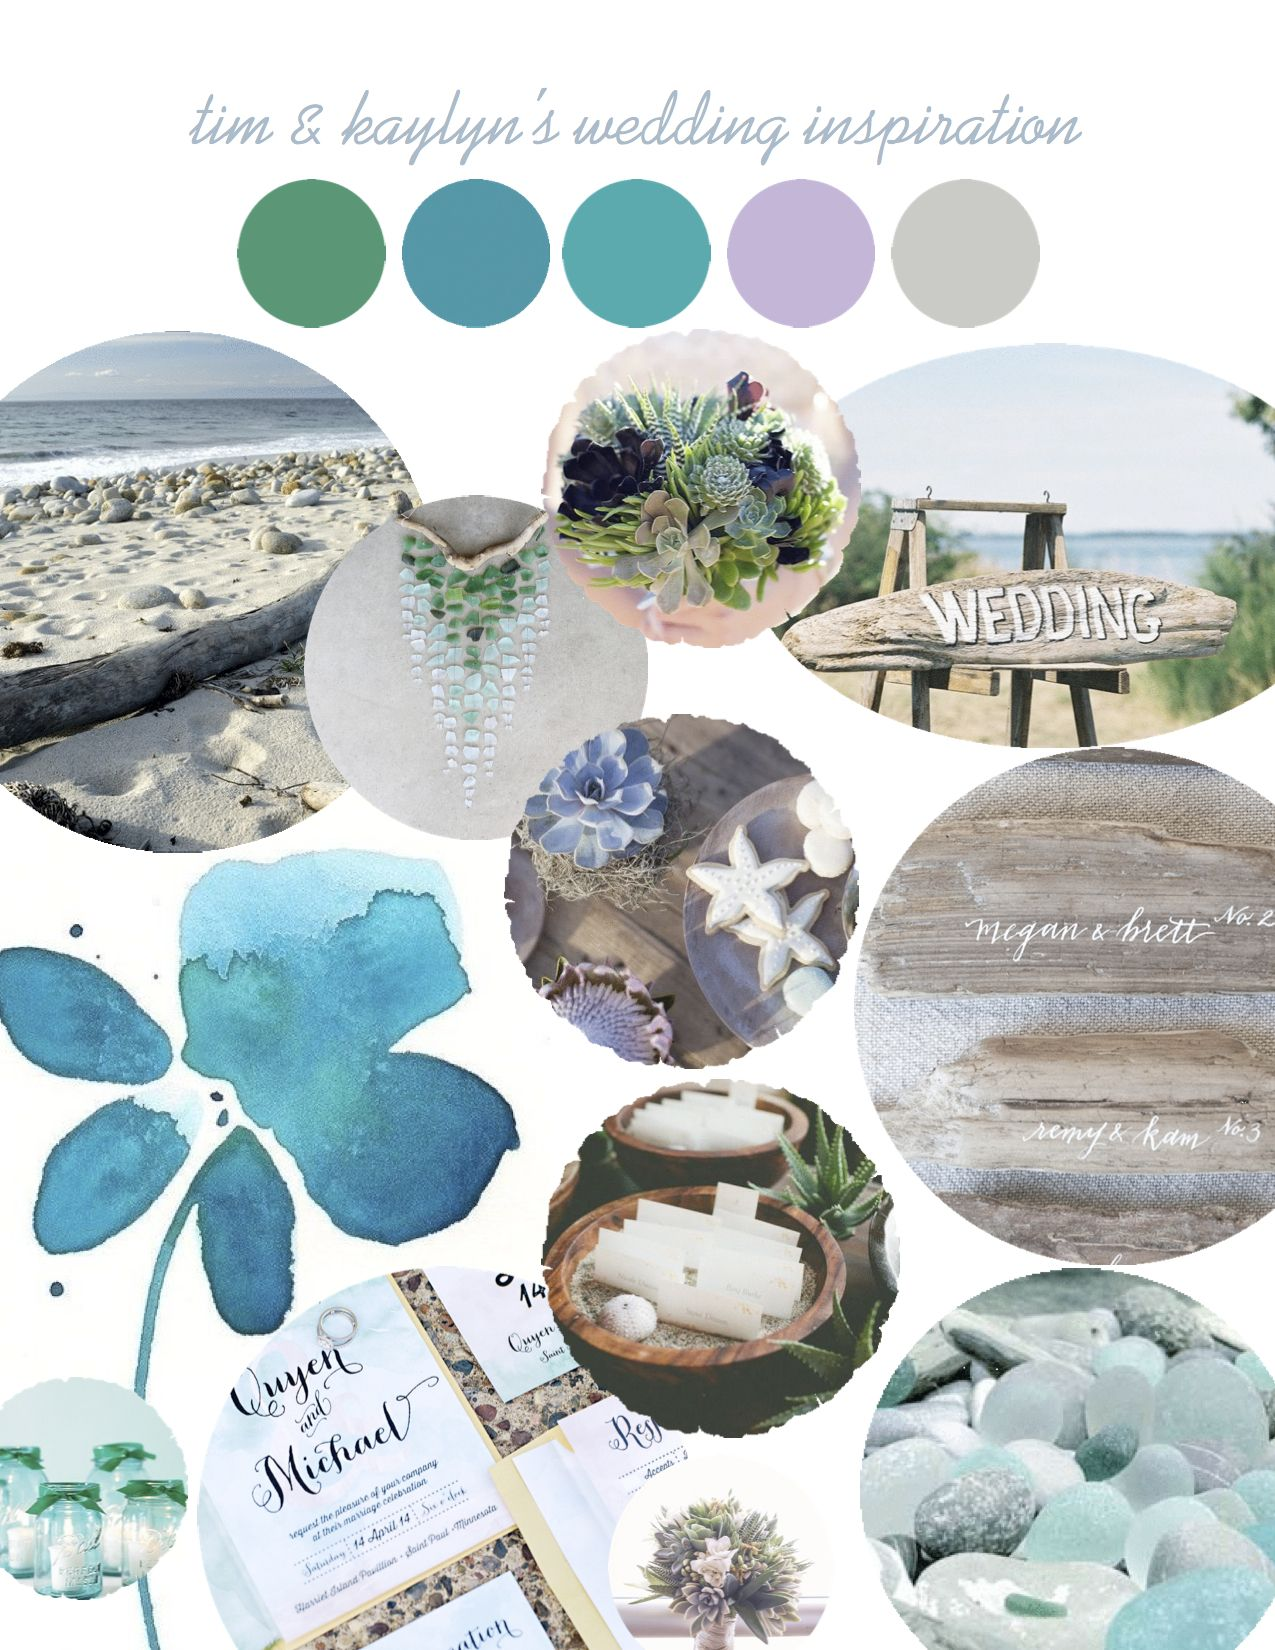 Some of our wedding inspiration! Emerald, teal, turquoise, lavender, and grey. And other more muted tones of each. Driftwood, succulents, sea glass, and watercolor.